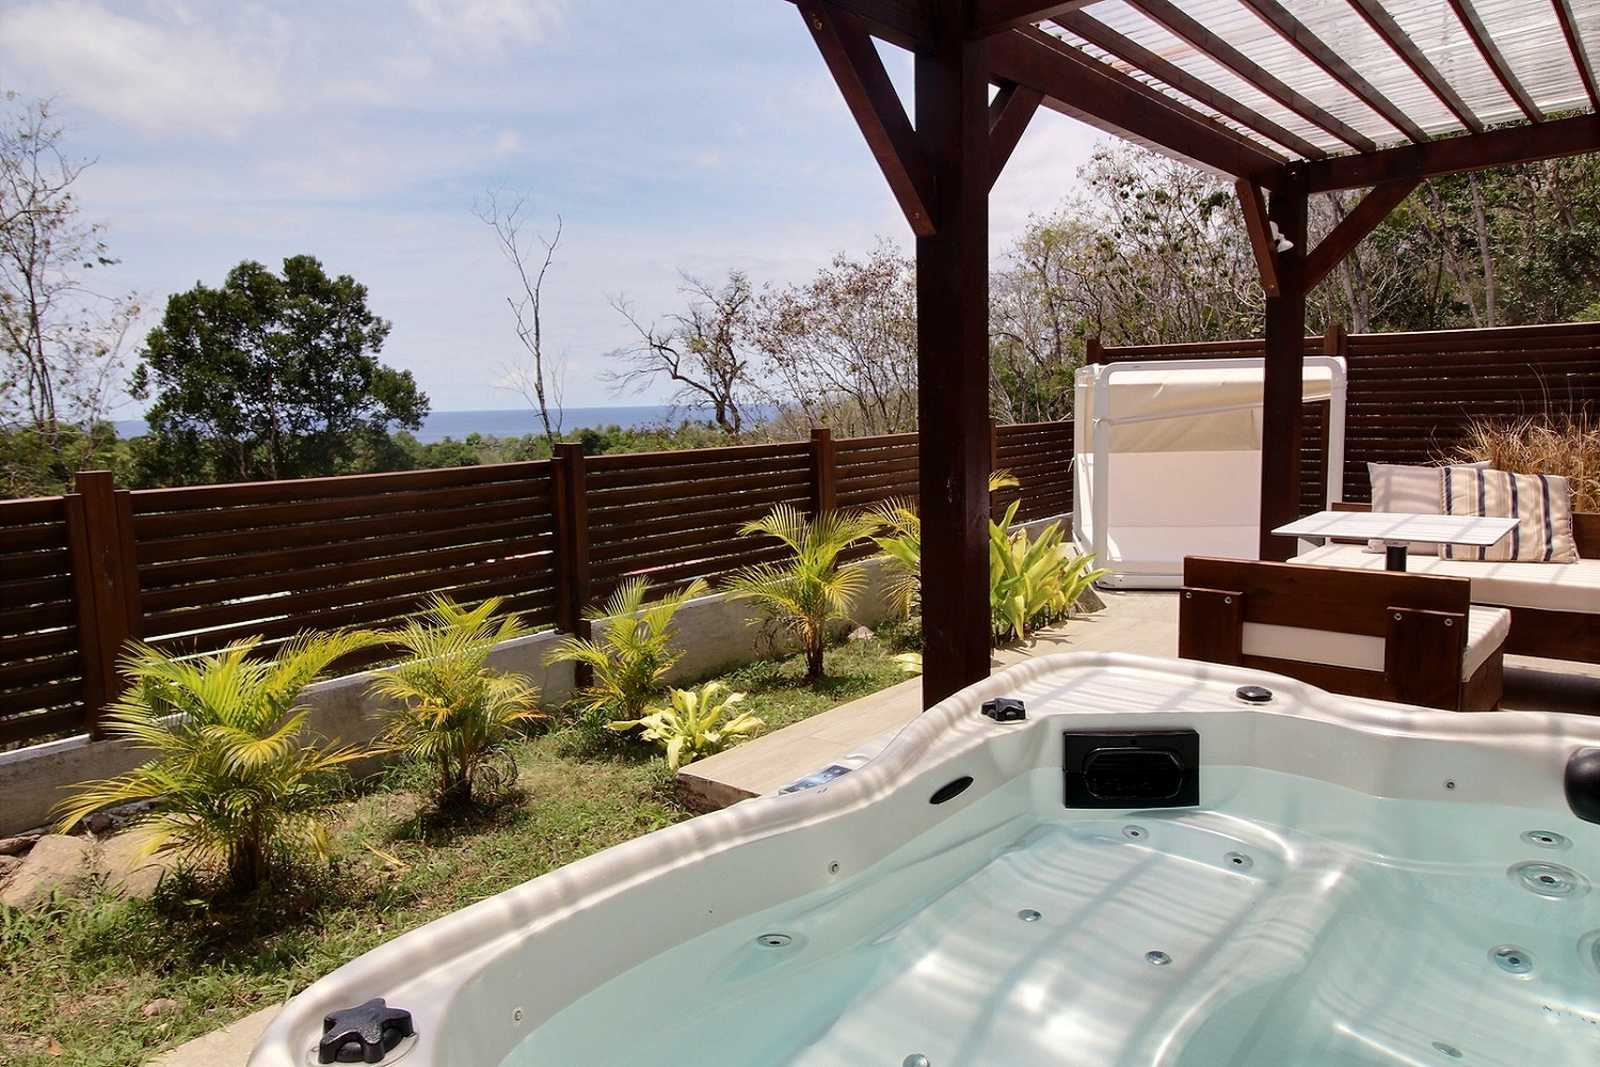 location bungalow jacuzzi guadeloupe